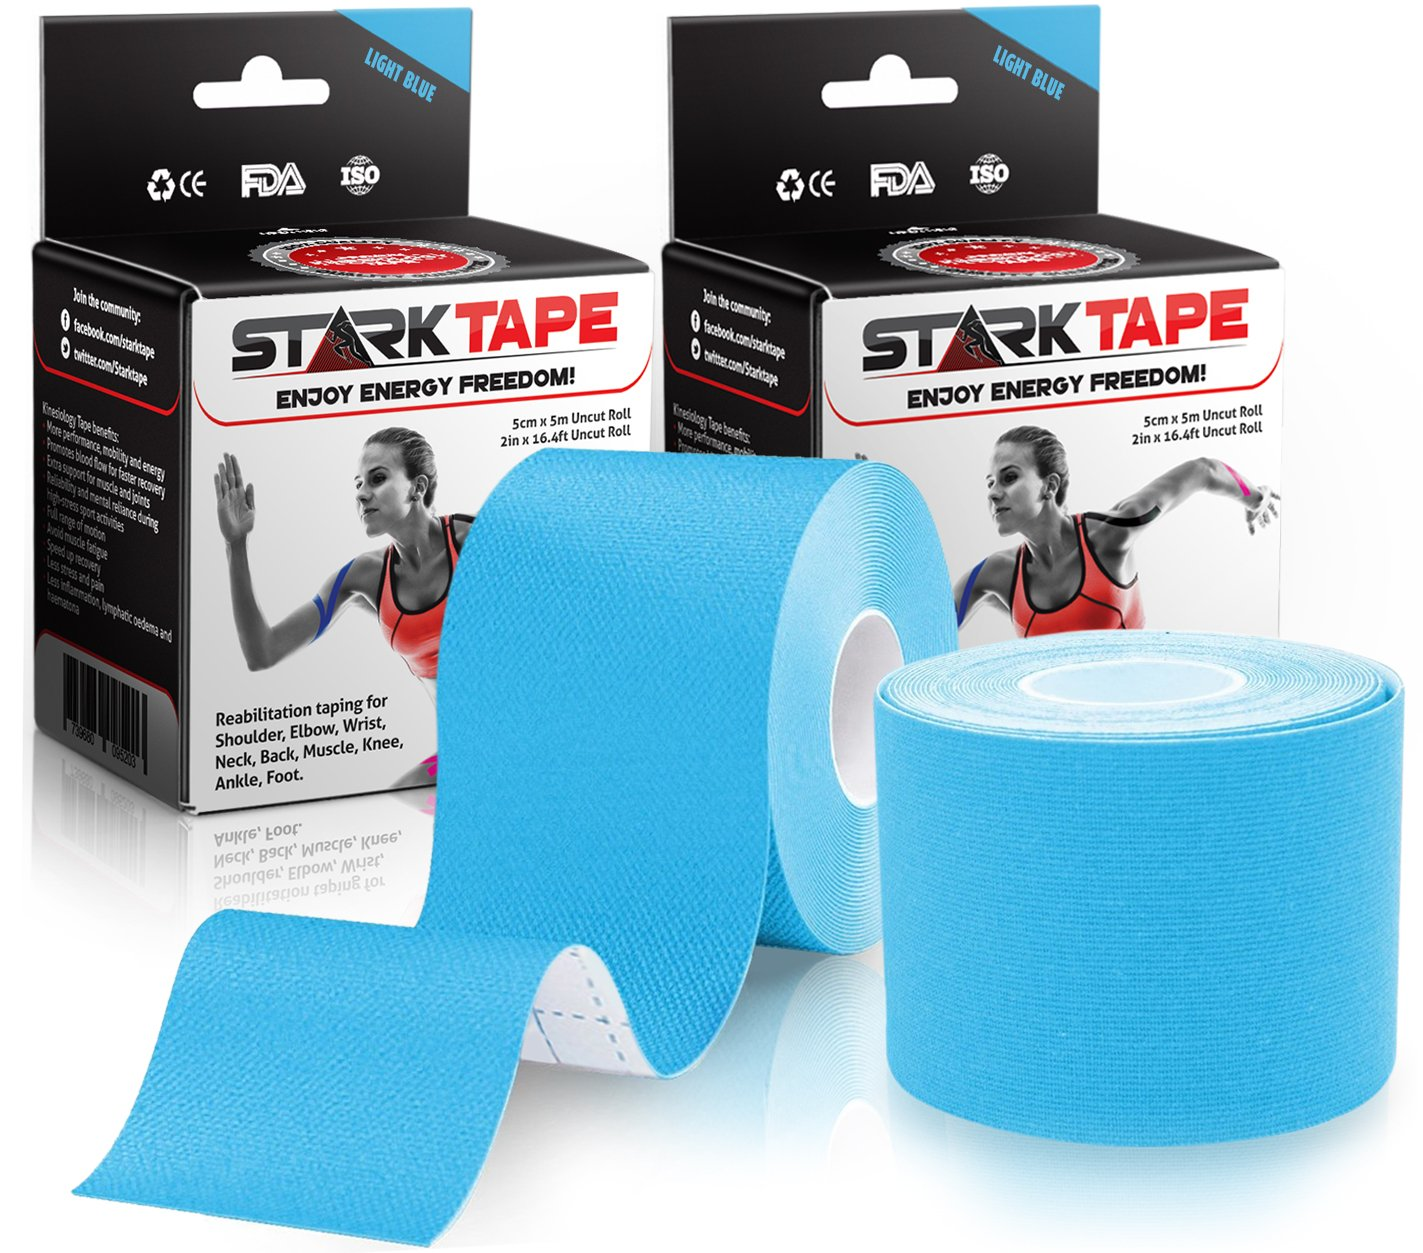 Starktape Kinesiology Tape | Designed to Help Boost Athletic Performance, Prevent Joint, Muscle Pain and Ease Inflammation | Easy to Apply, 97% Natural Cotton/3% Spandex (Blue 2 pack)